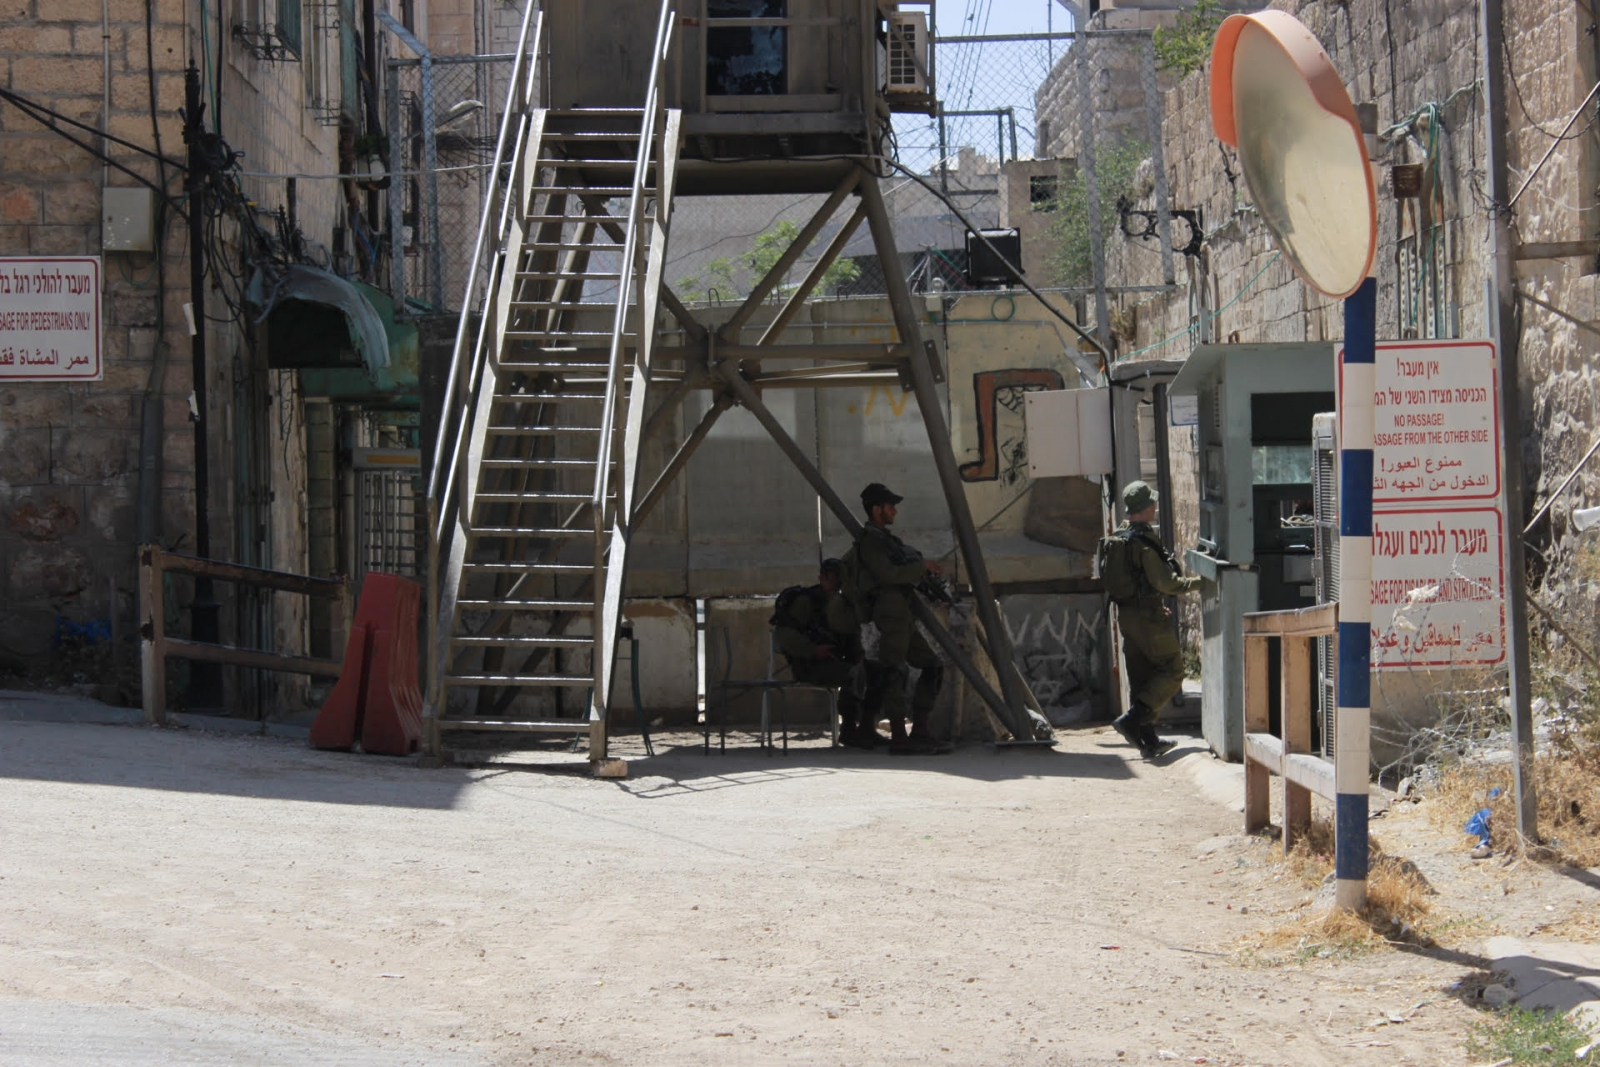 IDF checkpoint Hebron West Bank